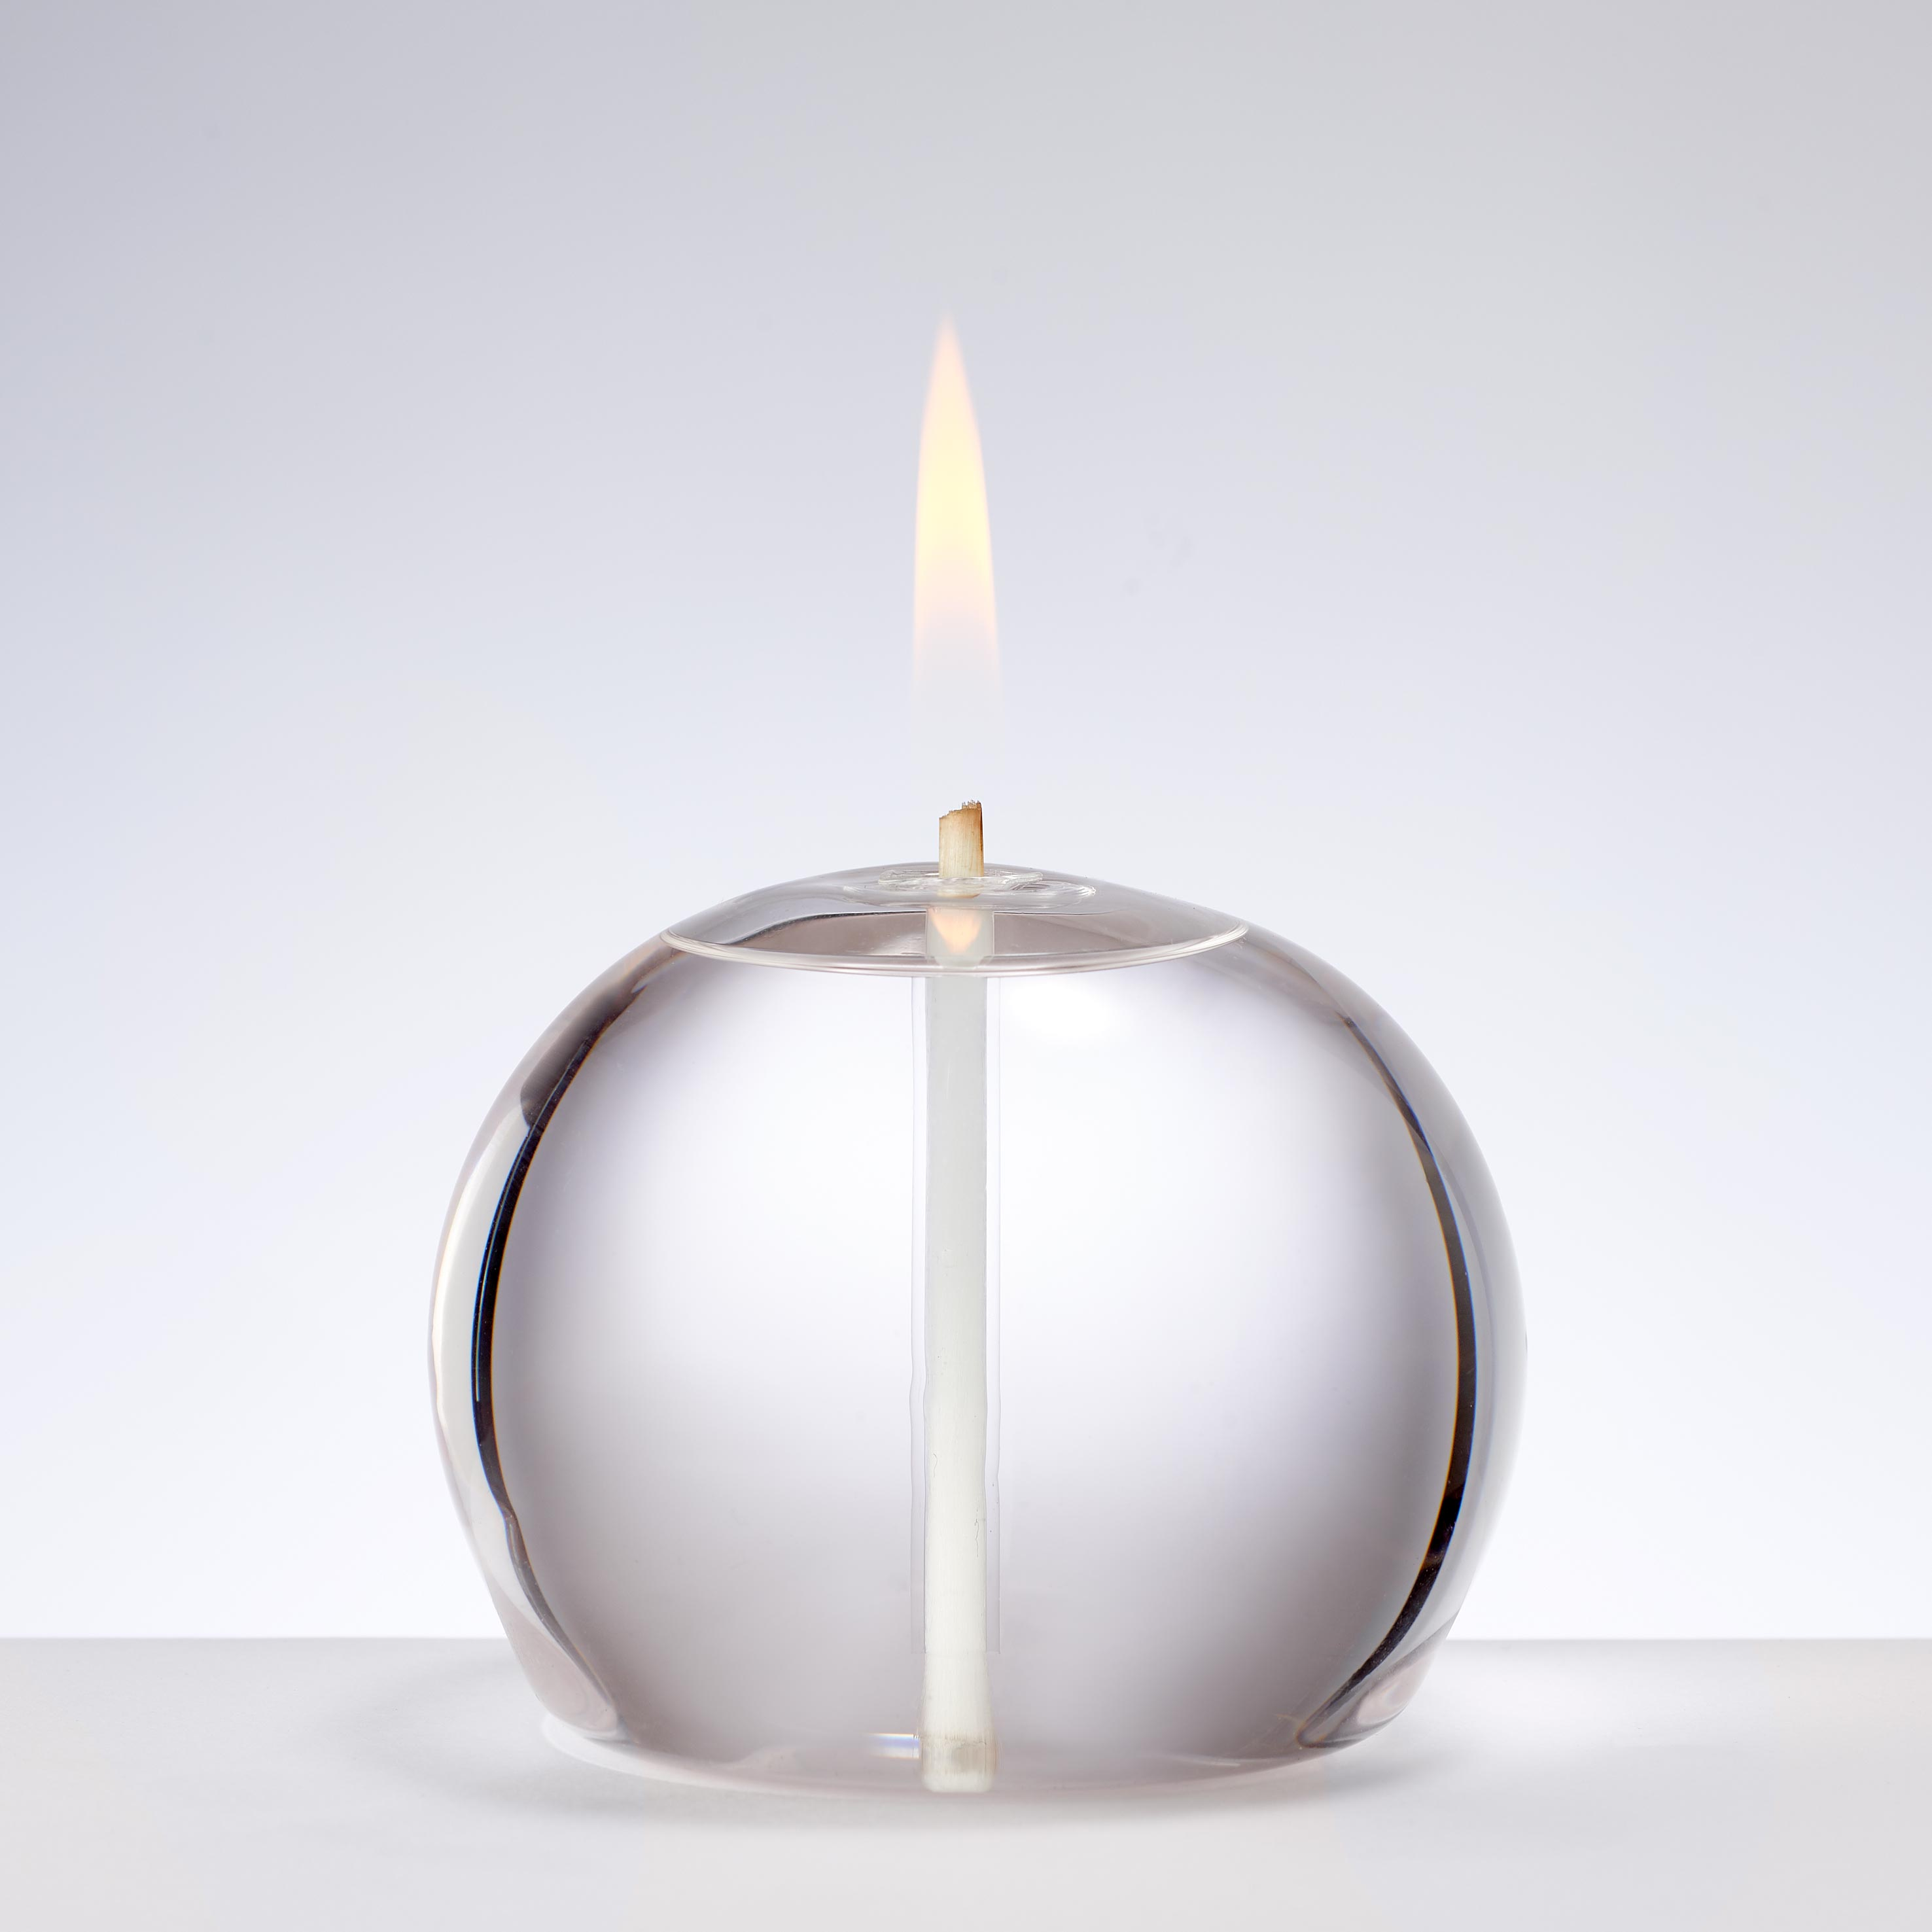 MEDIUM ROUND GLASS CANDLE